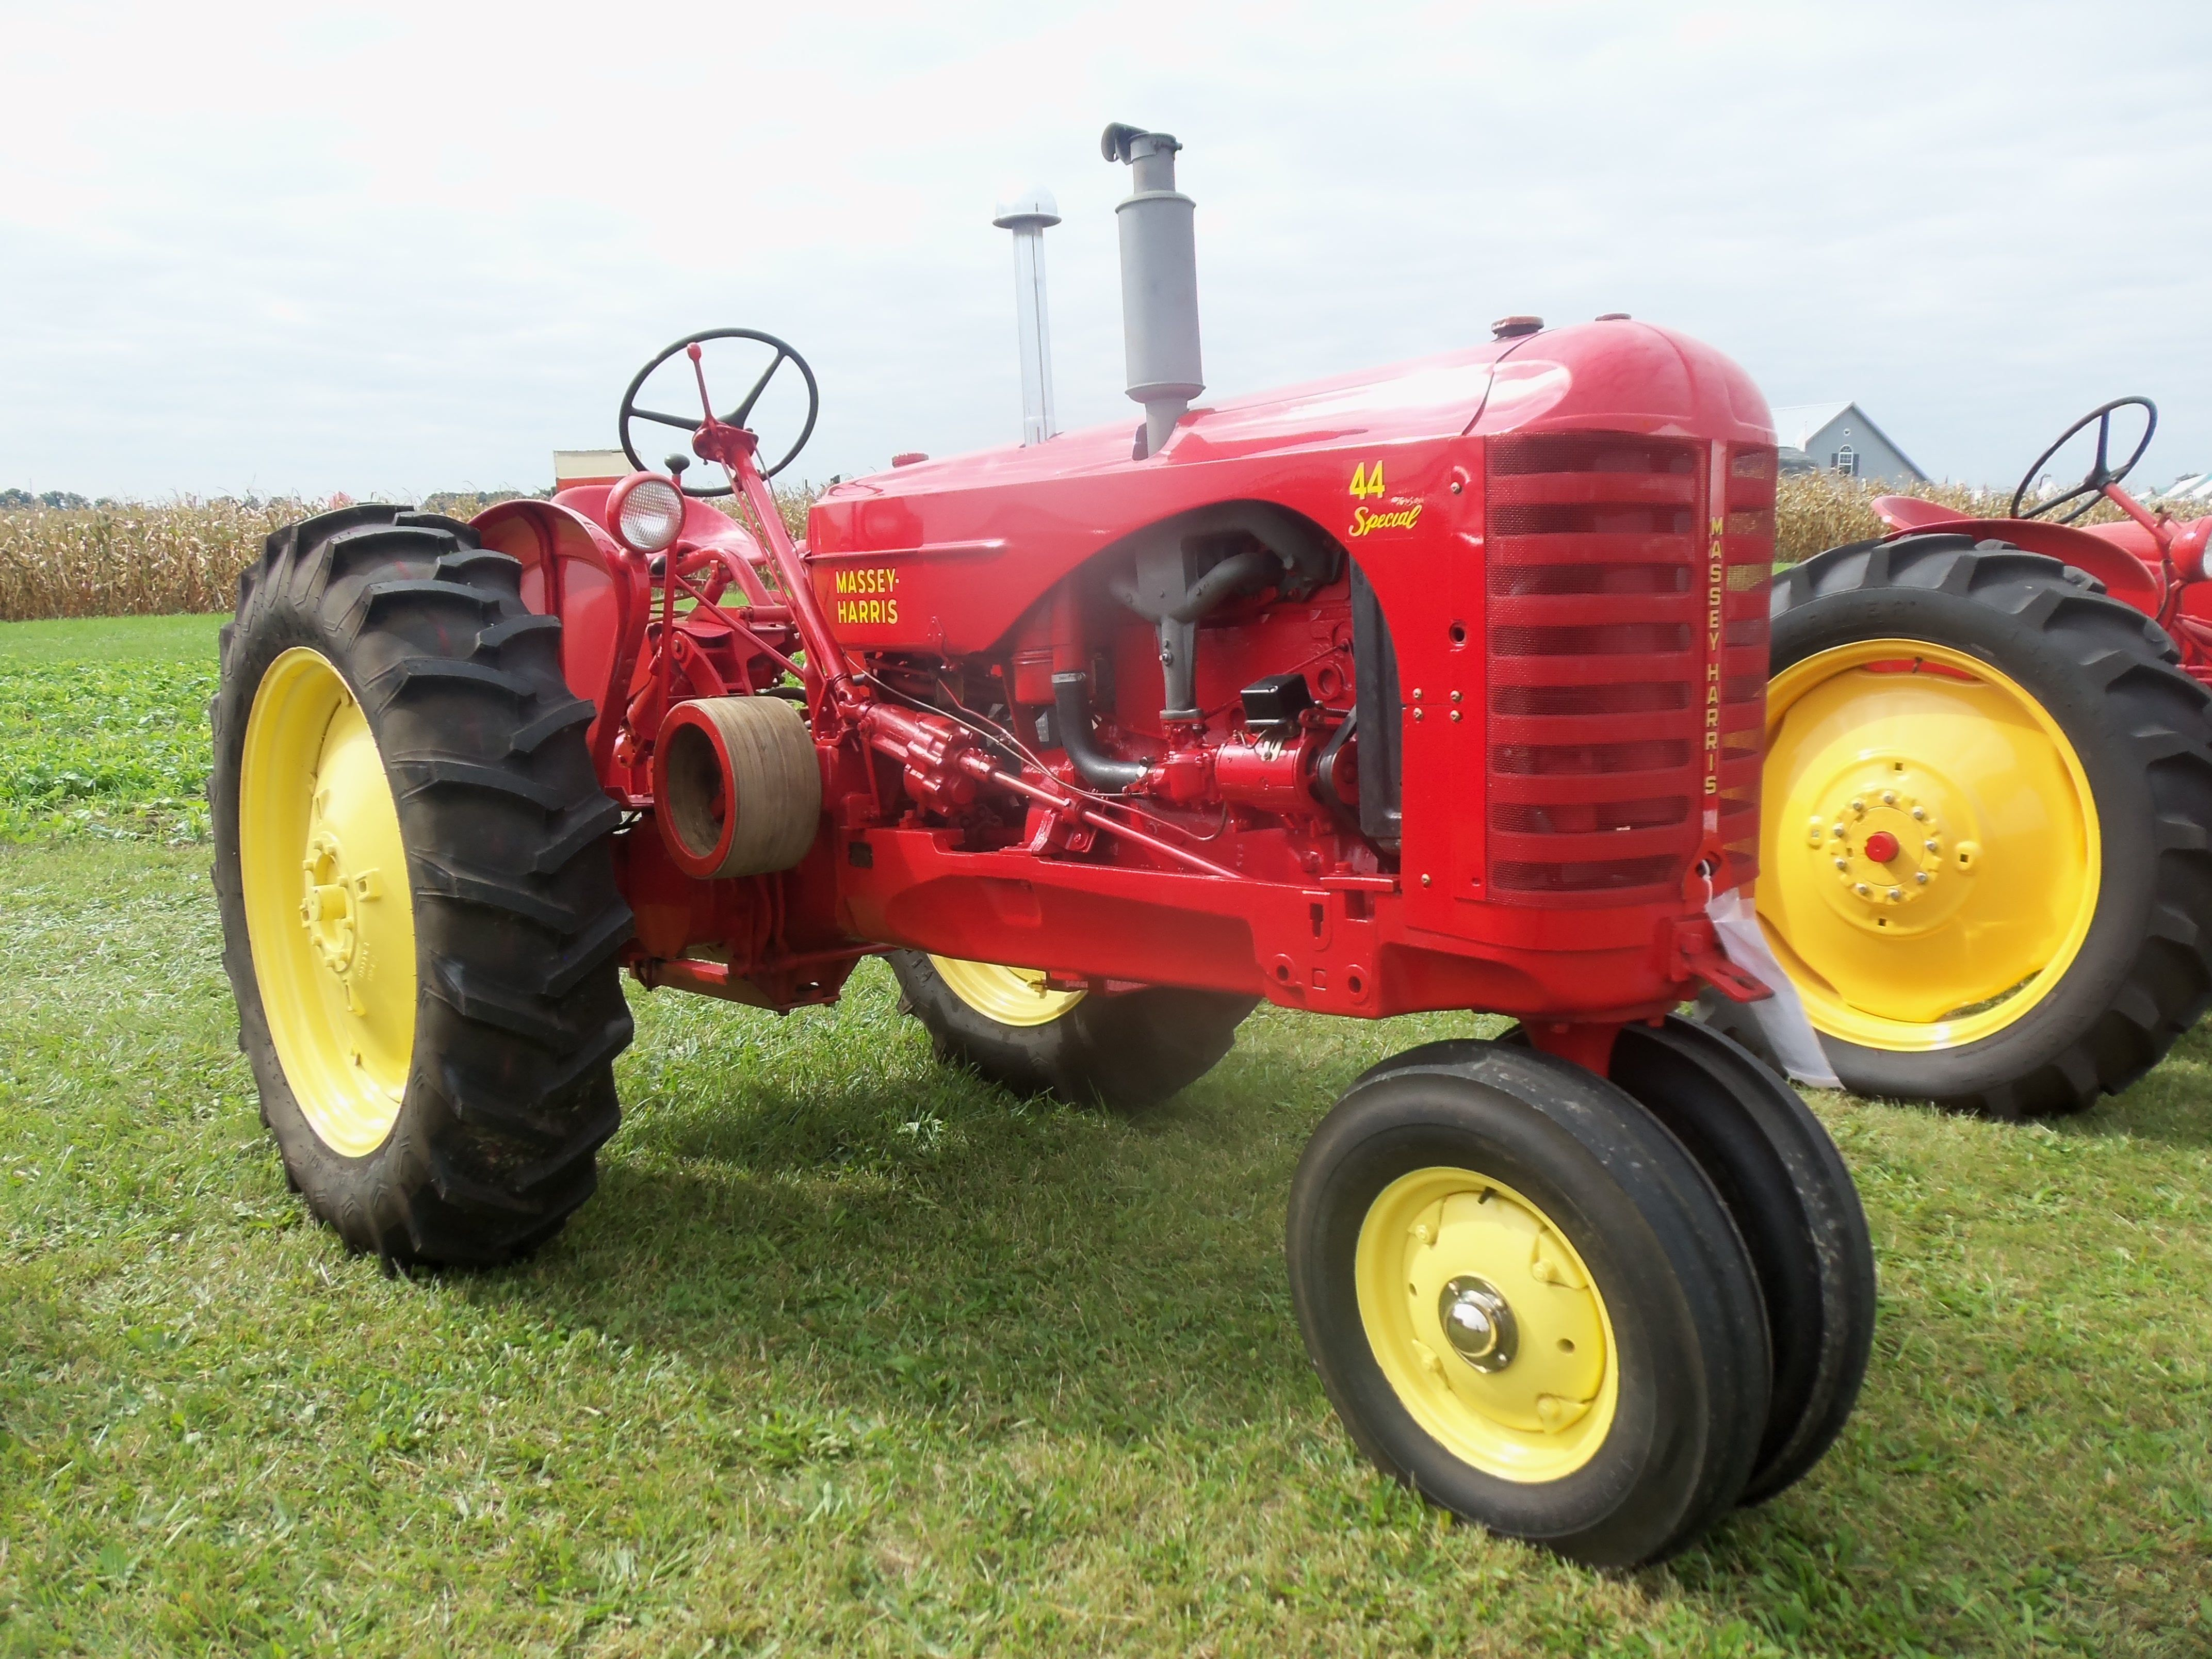 Massey Harris 44 SPECIAL Antique Tractors, Old Tractors, Old Farm  Equipment, Tractor Pulling